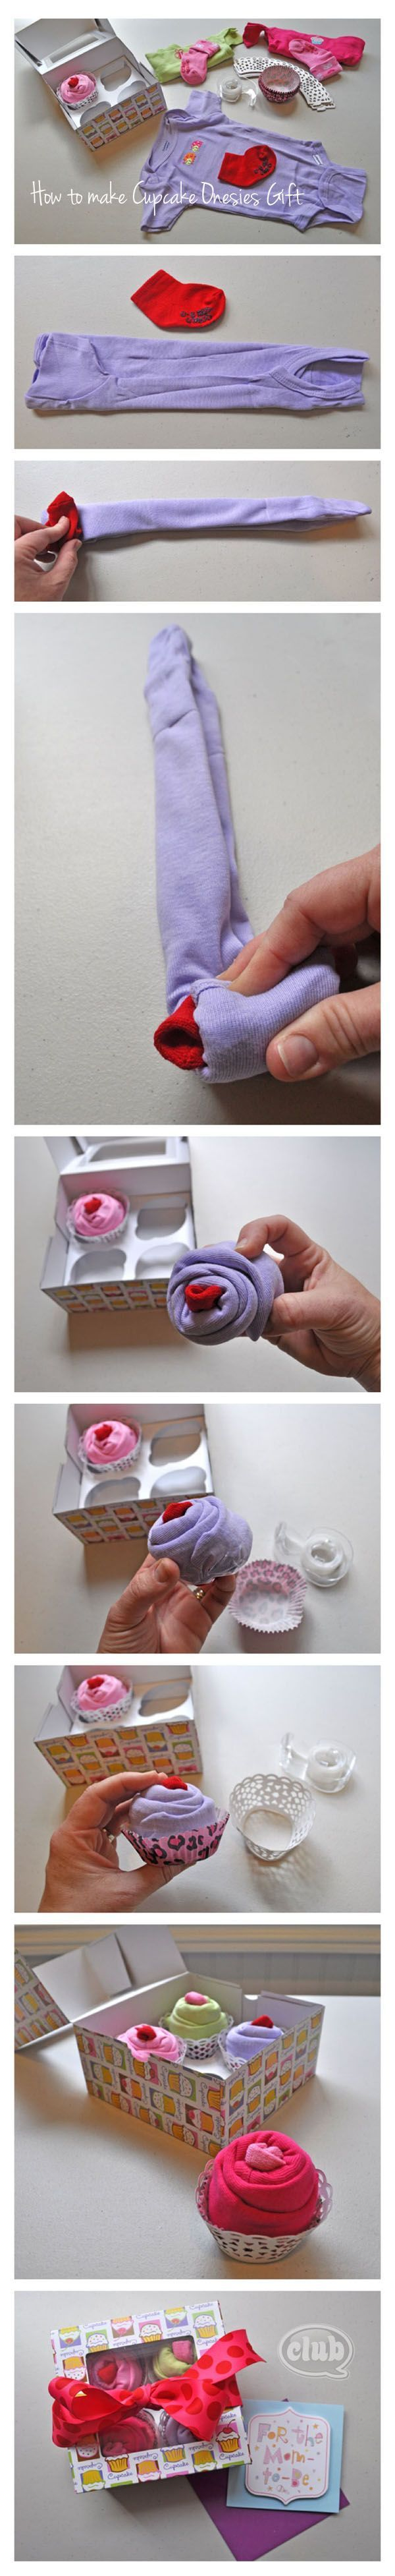 Turn onesies into cute cupcake gifts!